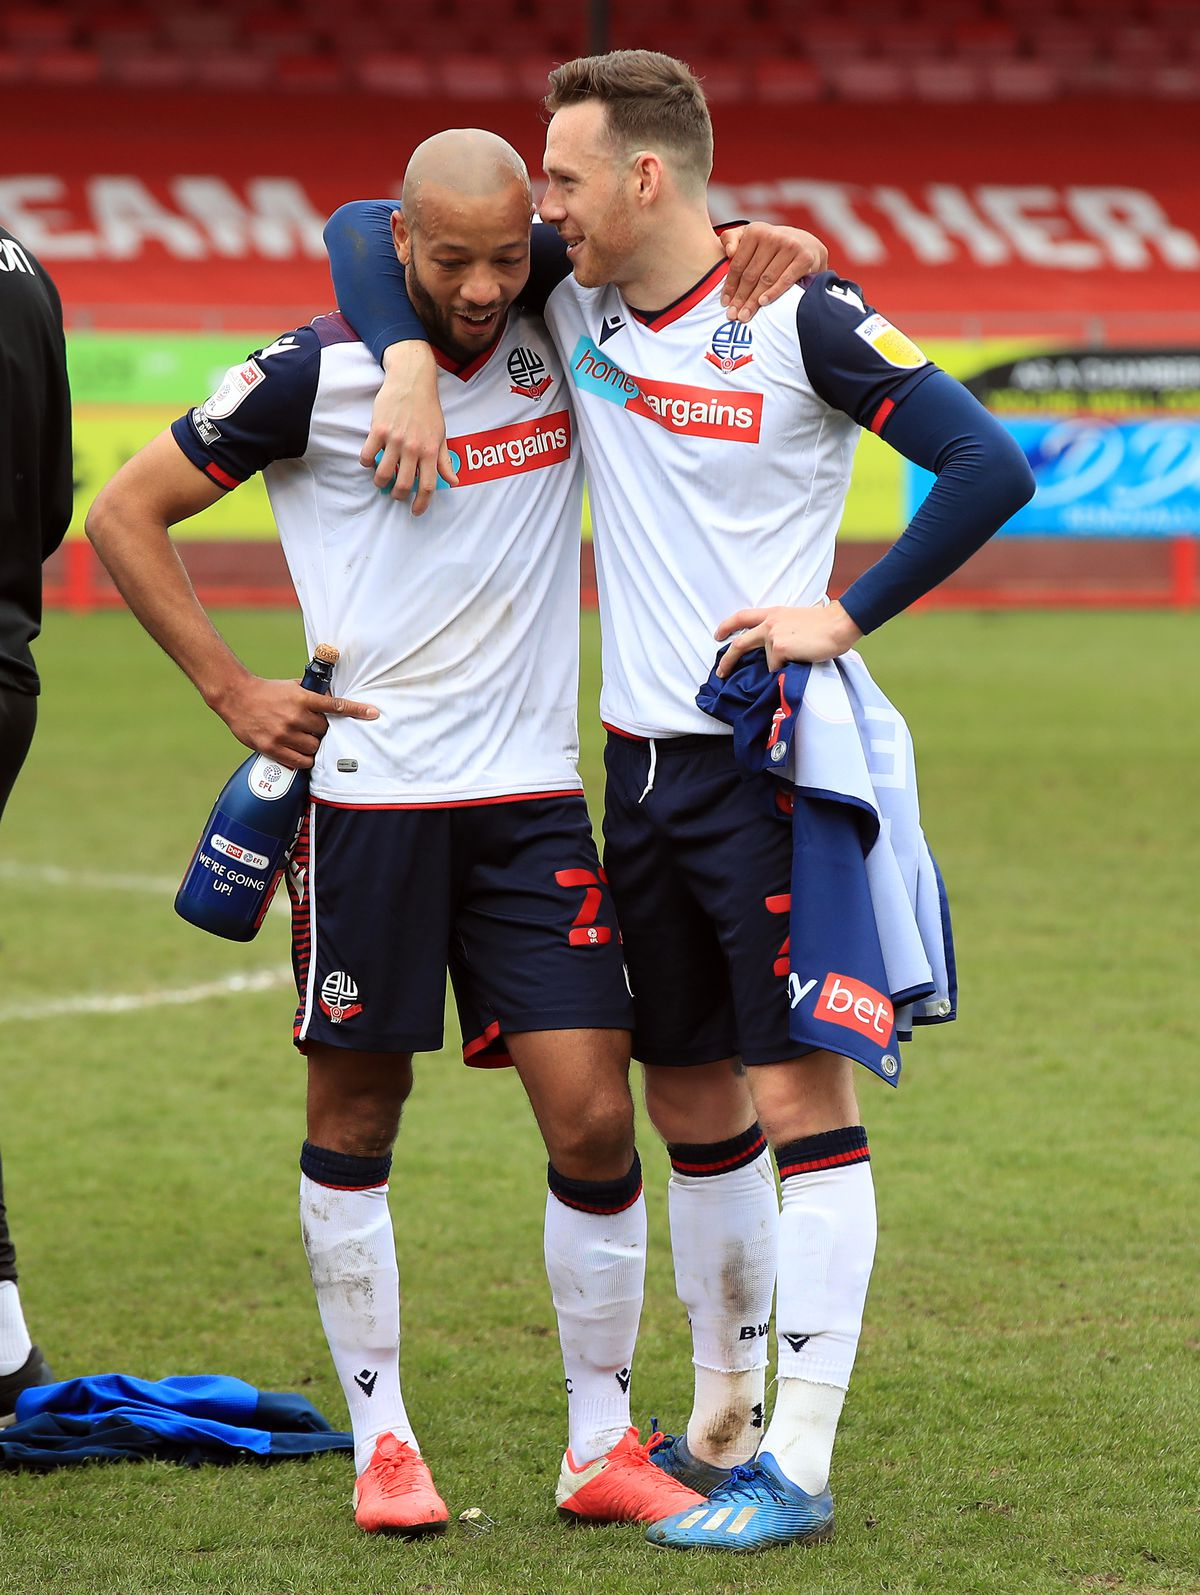 Crawley Town v Bolton Wanderers - Sky Bet League Two - The People's Pension Stadium